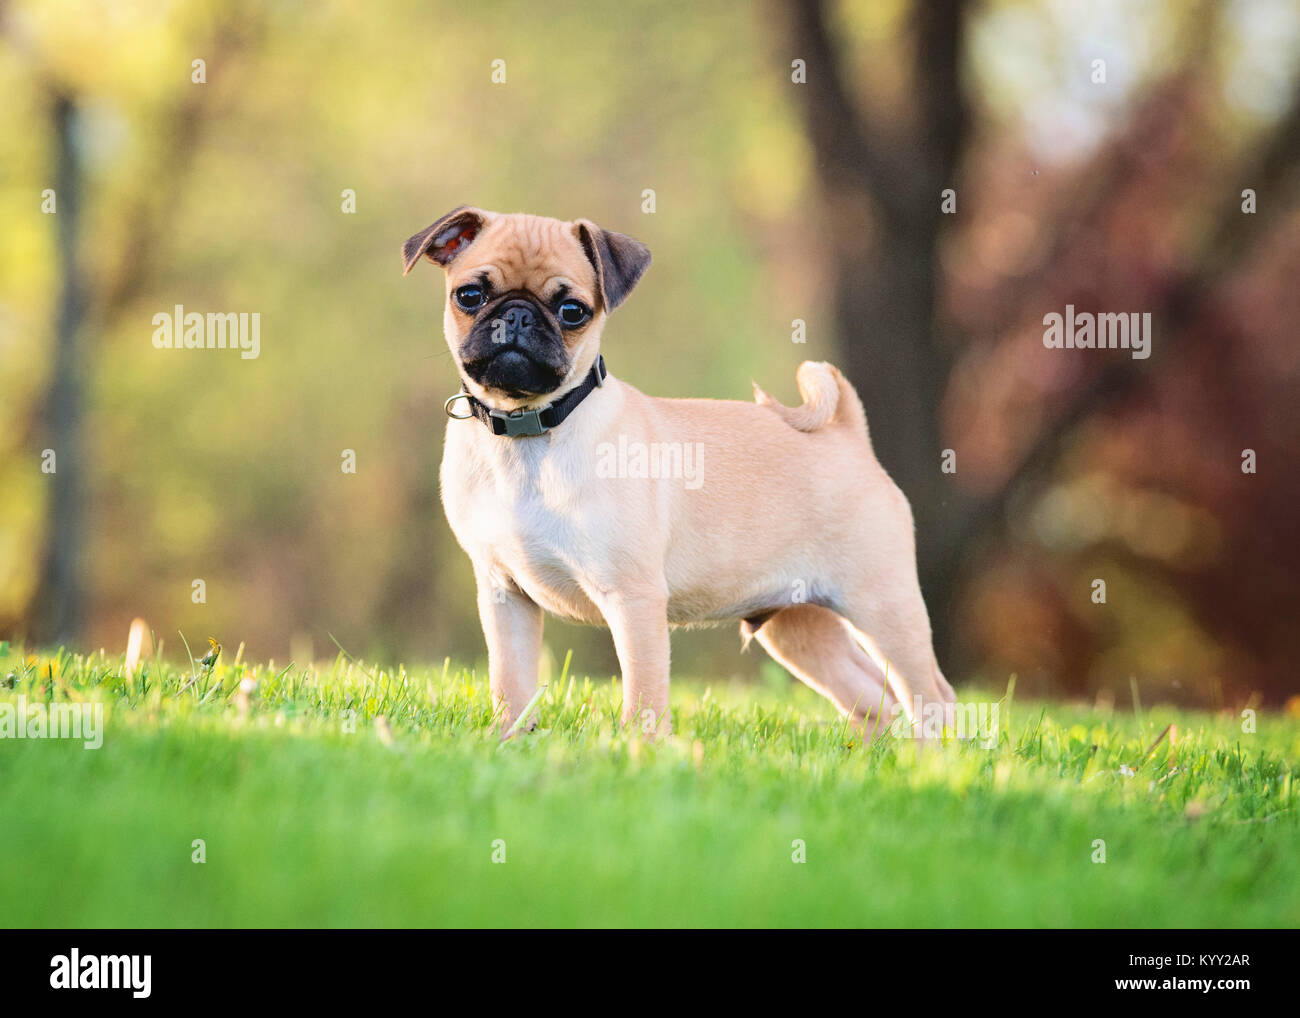 Portrait of pug standing on grassy field at park - Stock Image